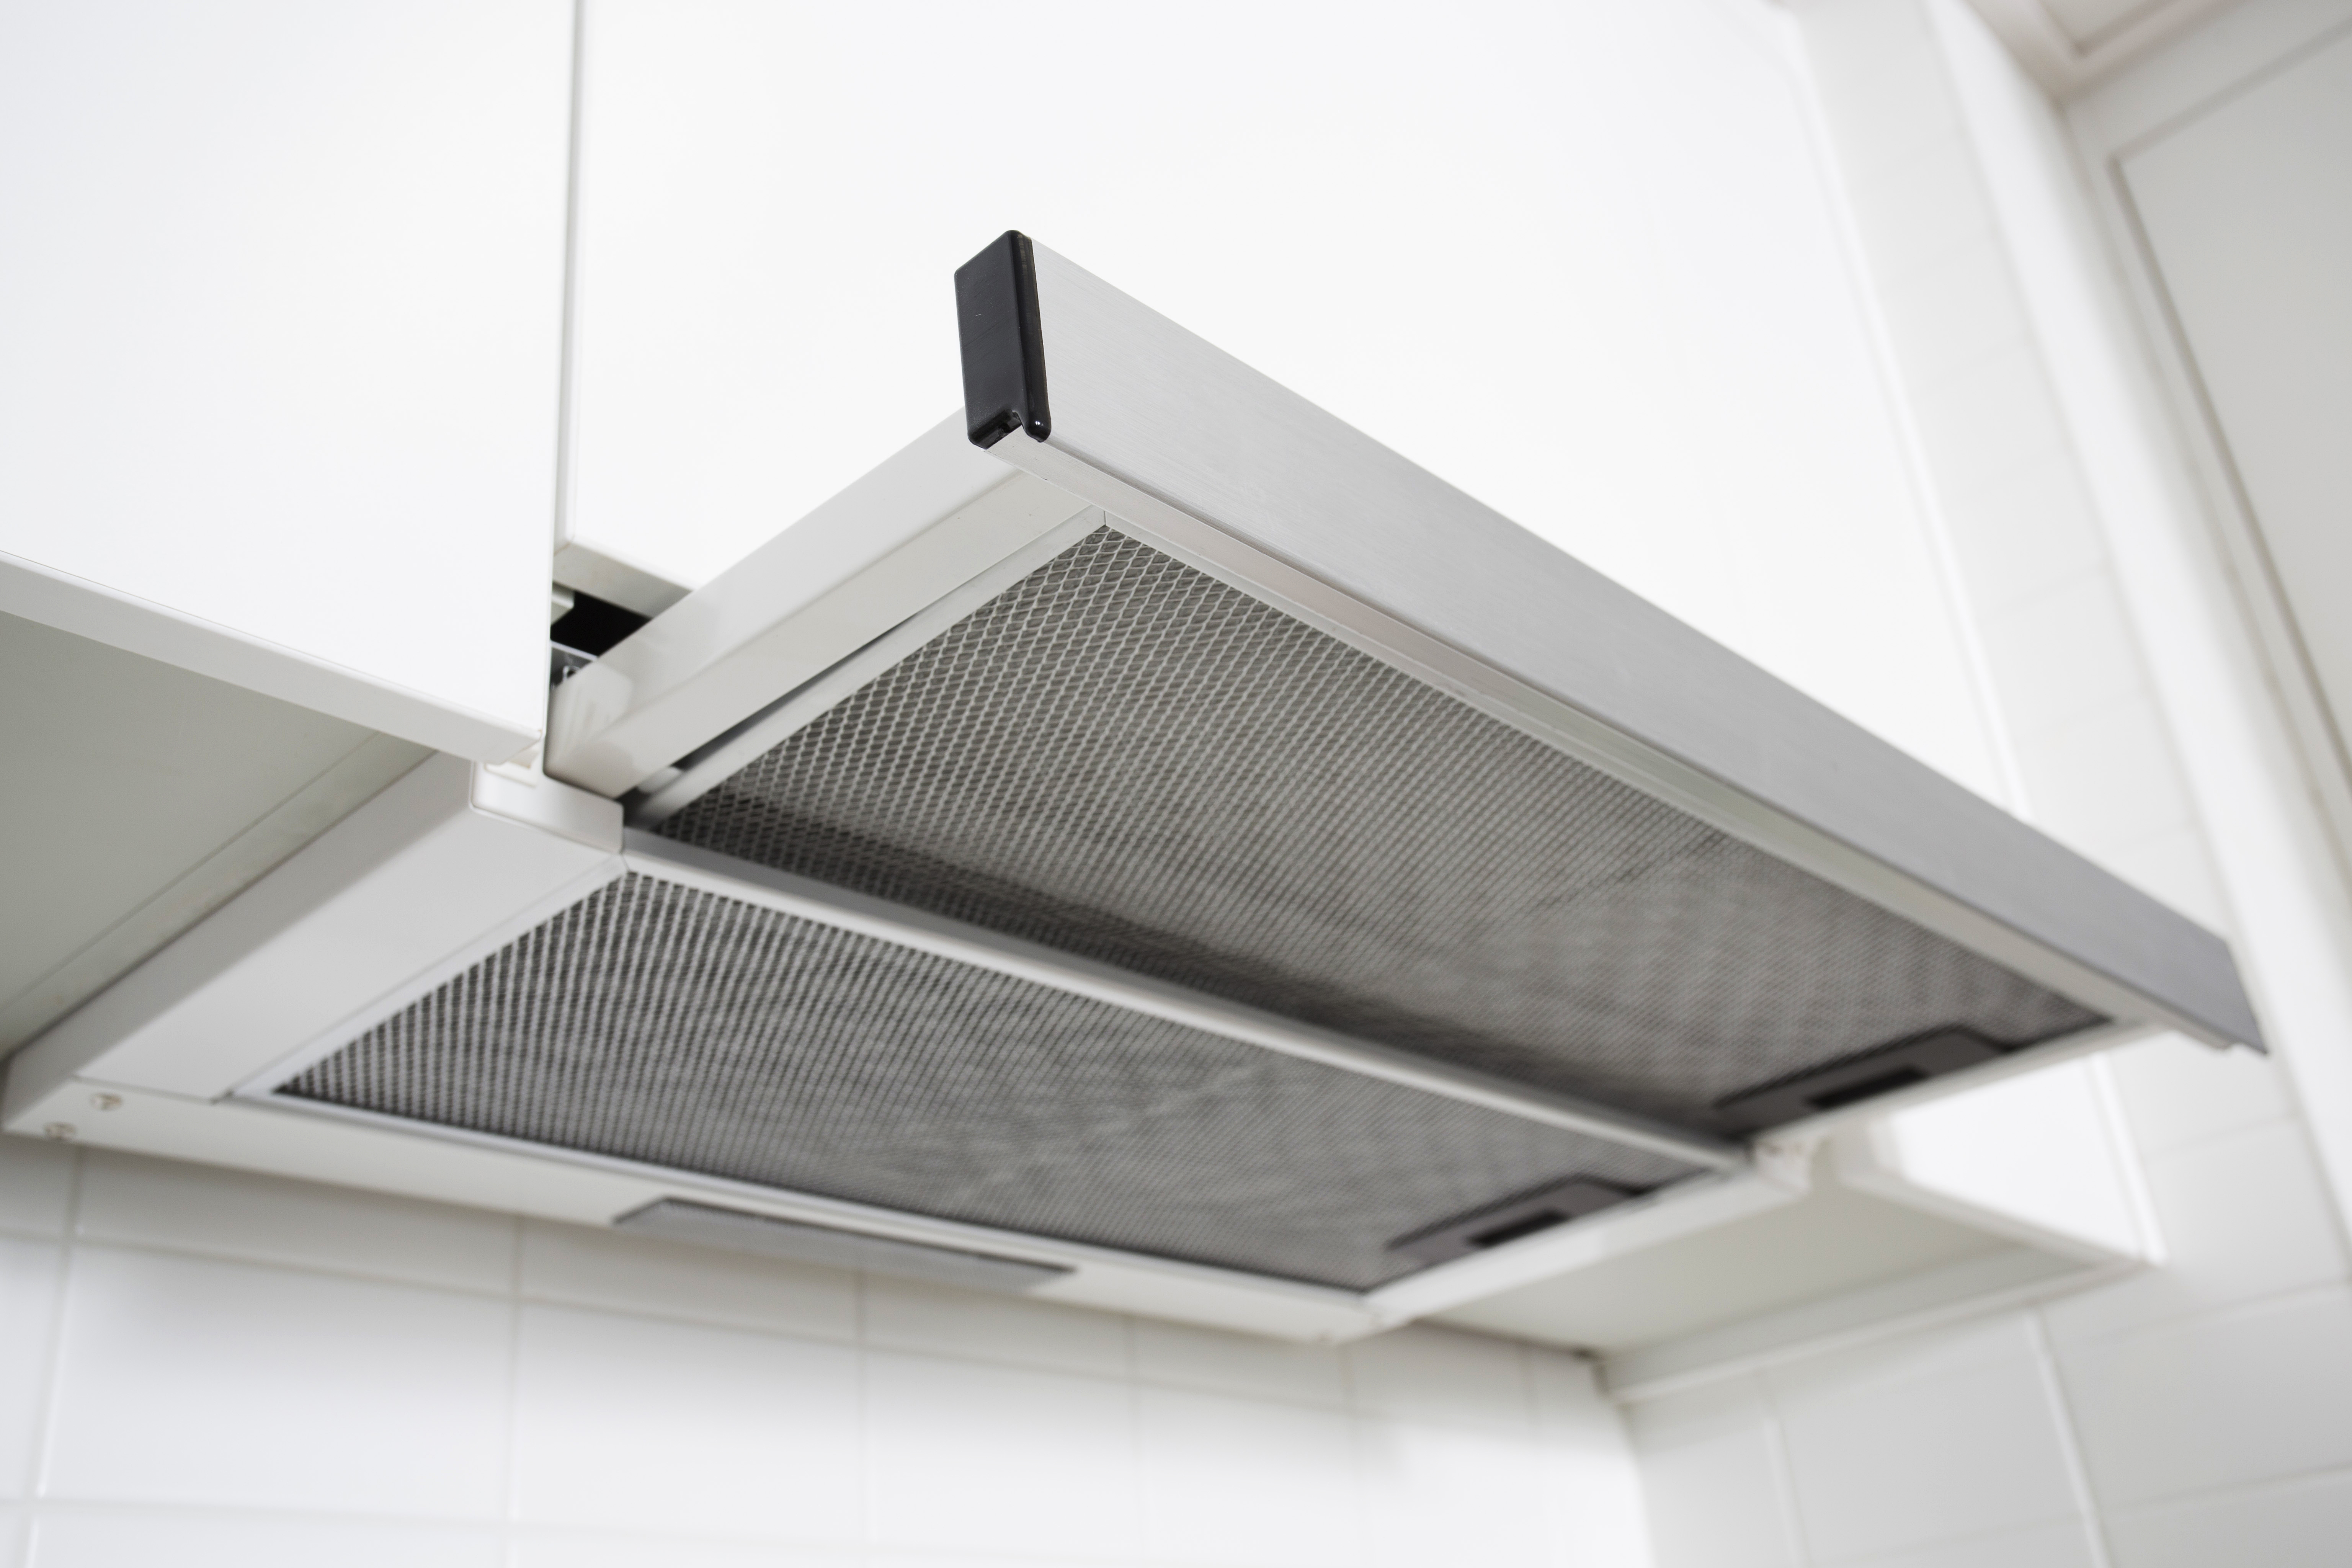 Standard Range Hood Duct Sizes | Home Guides | SF Gate